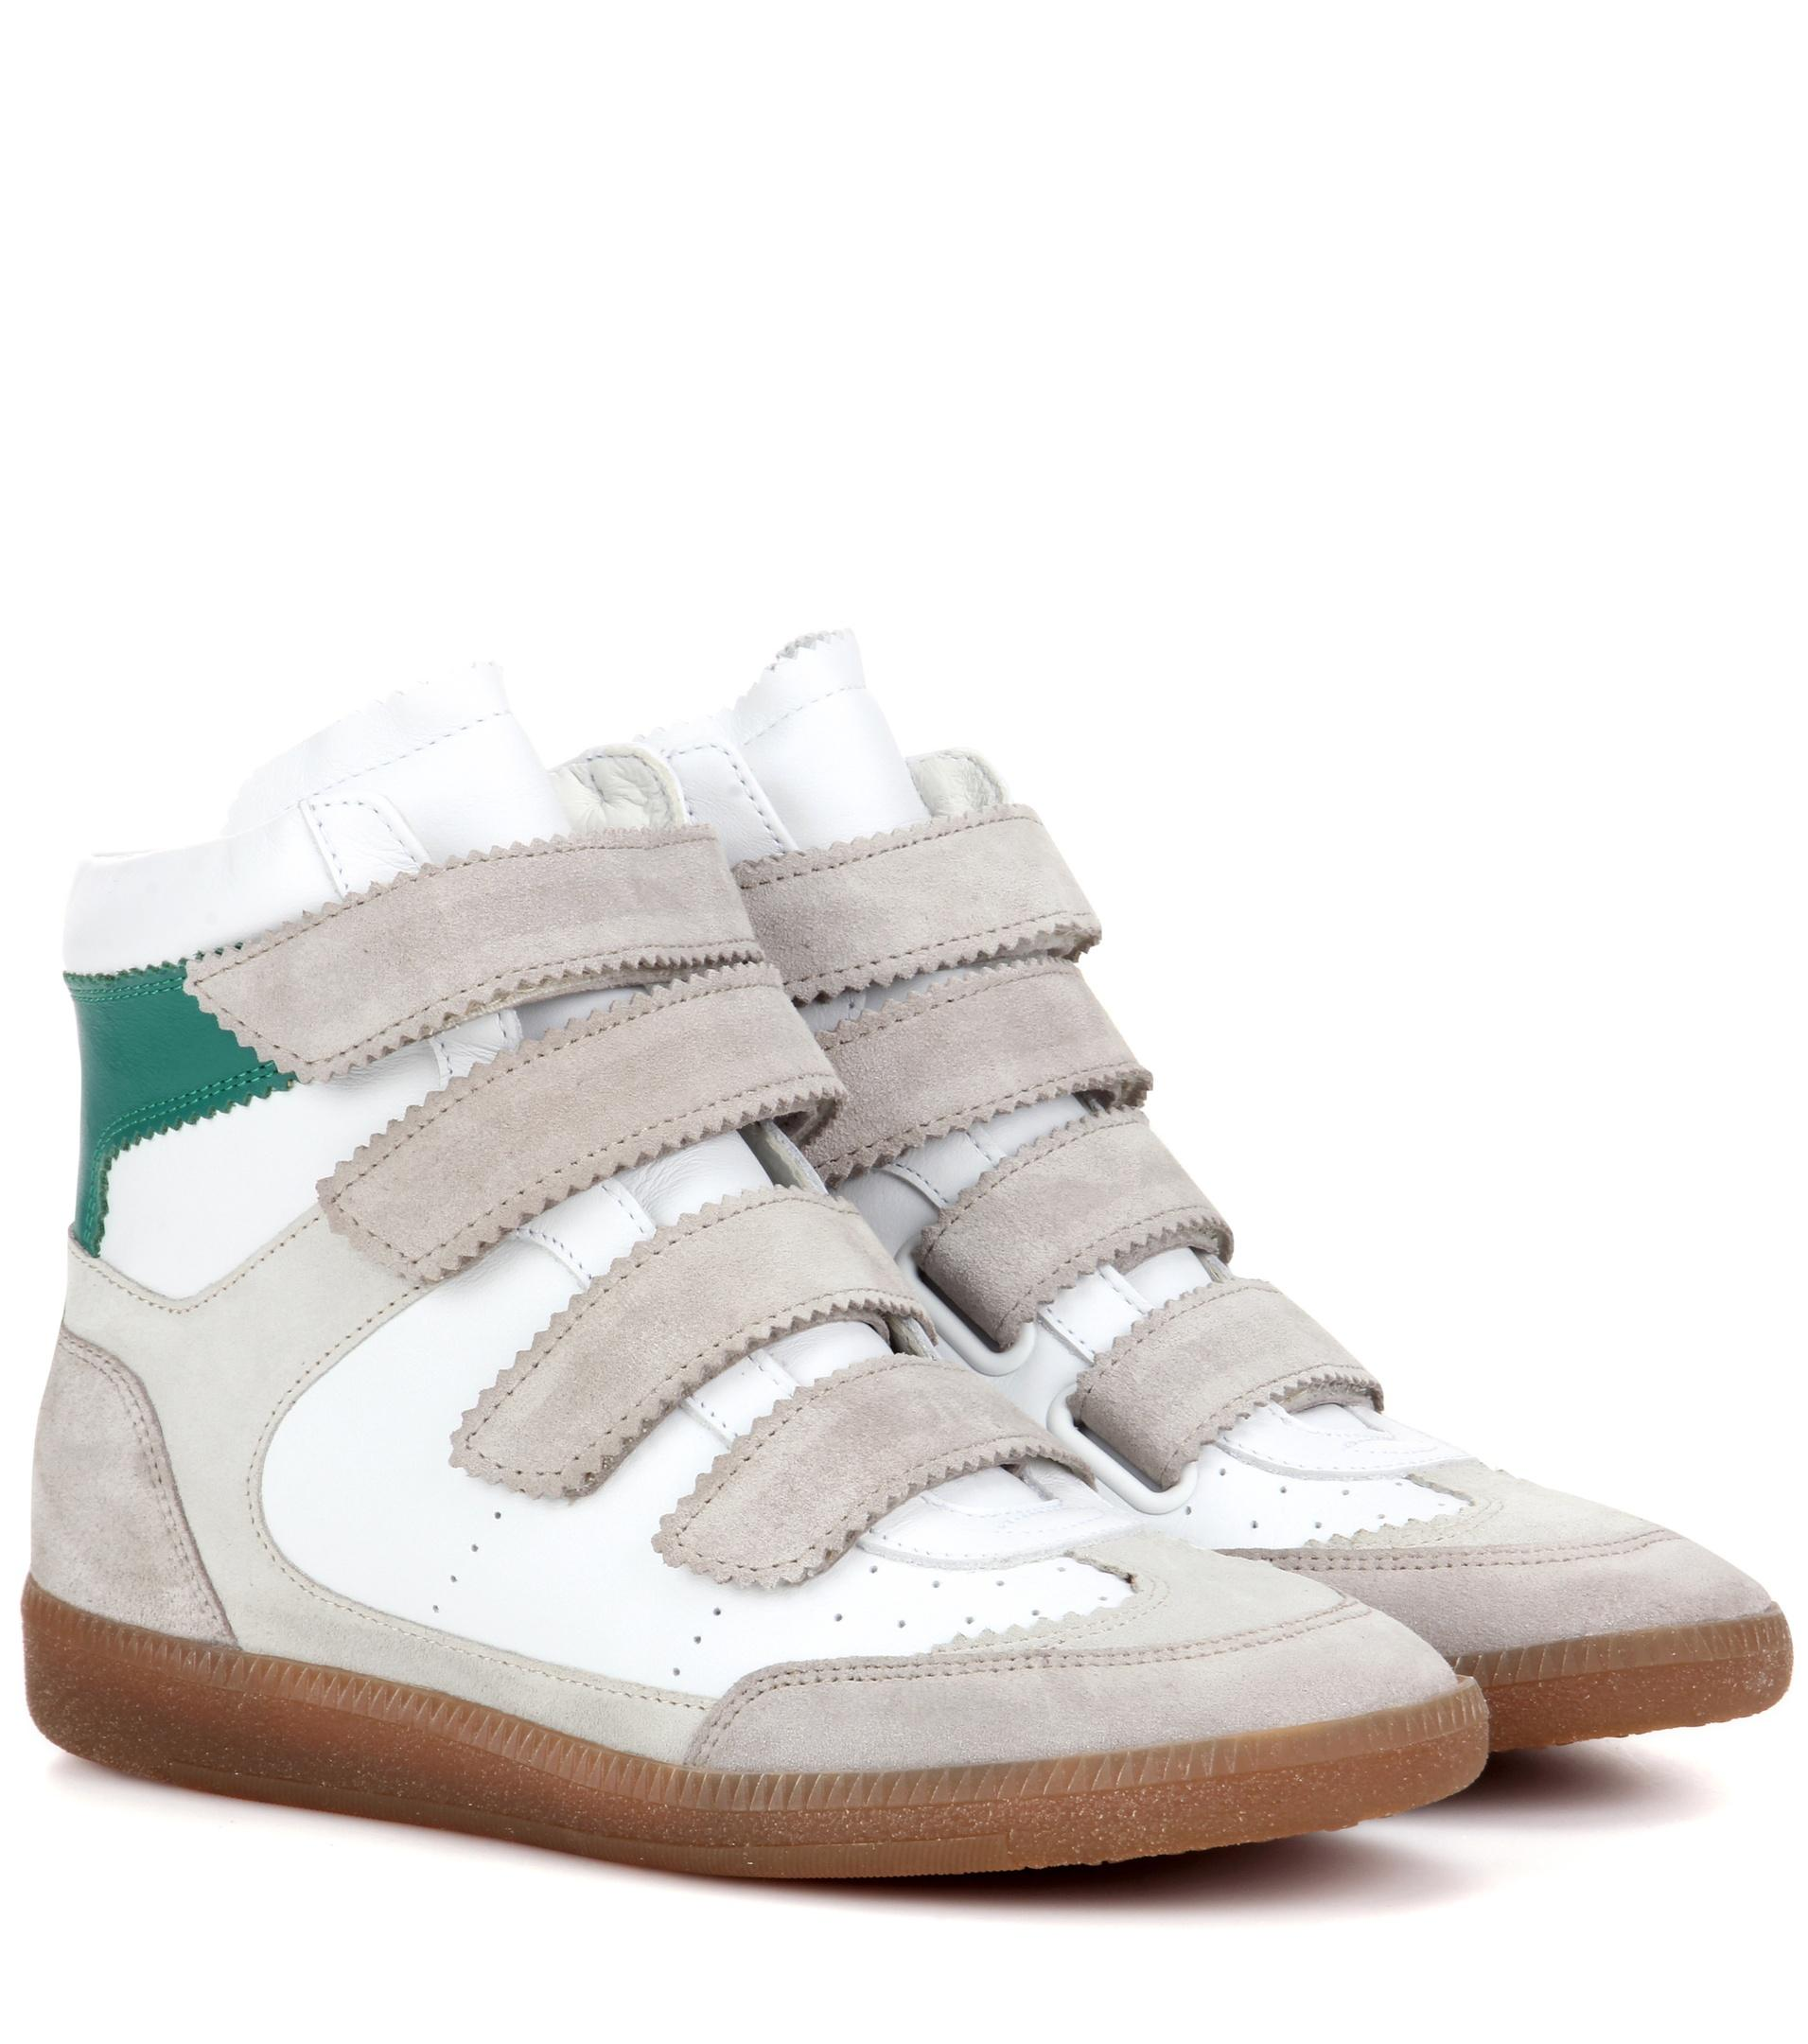 isabel marant toile bilsy leather high top sneakers in white lyst. Black Bedroom Furniture Sets. Home Design Ideas